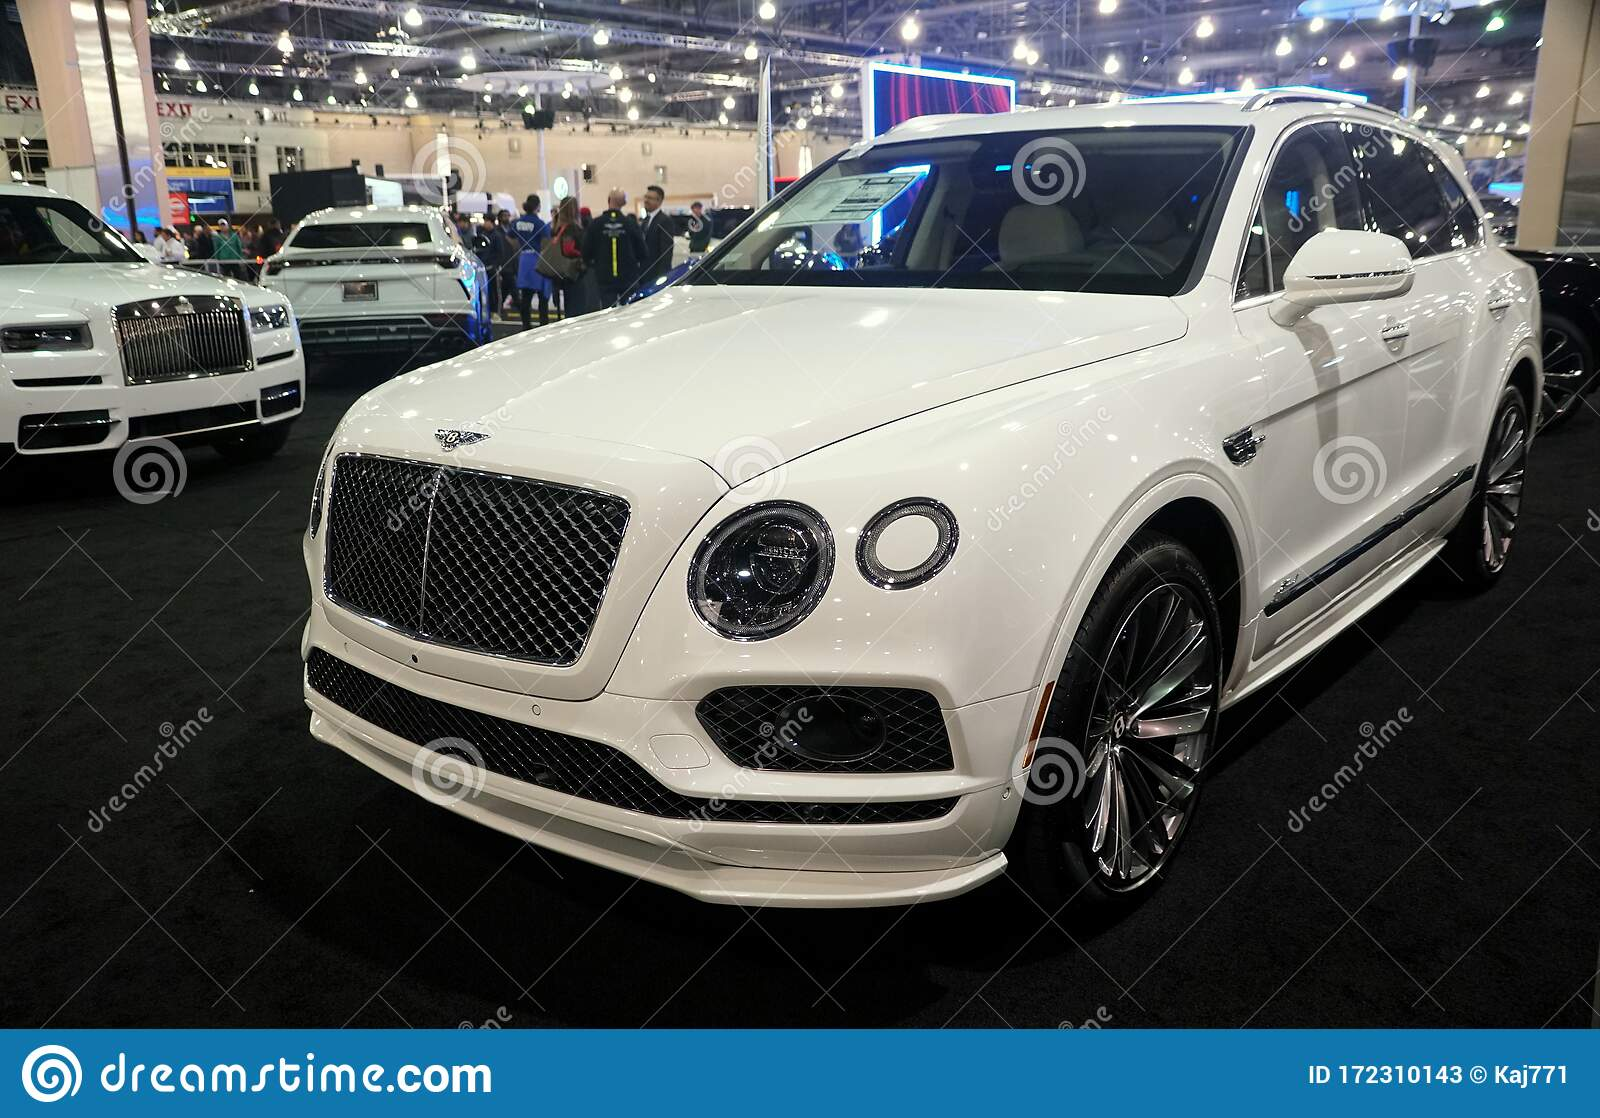 Philadelphia Pennsylvania U S A February 9 2020 The Side View Of The White 2020 Bentley Bentayga Suv Editorial Stock Photo Image Of Expensive Convertible 172310143